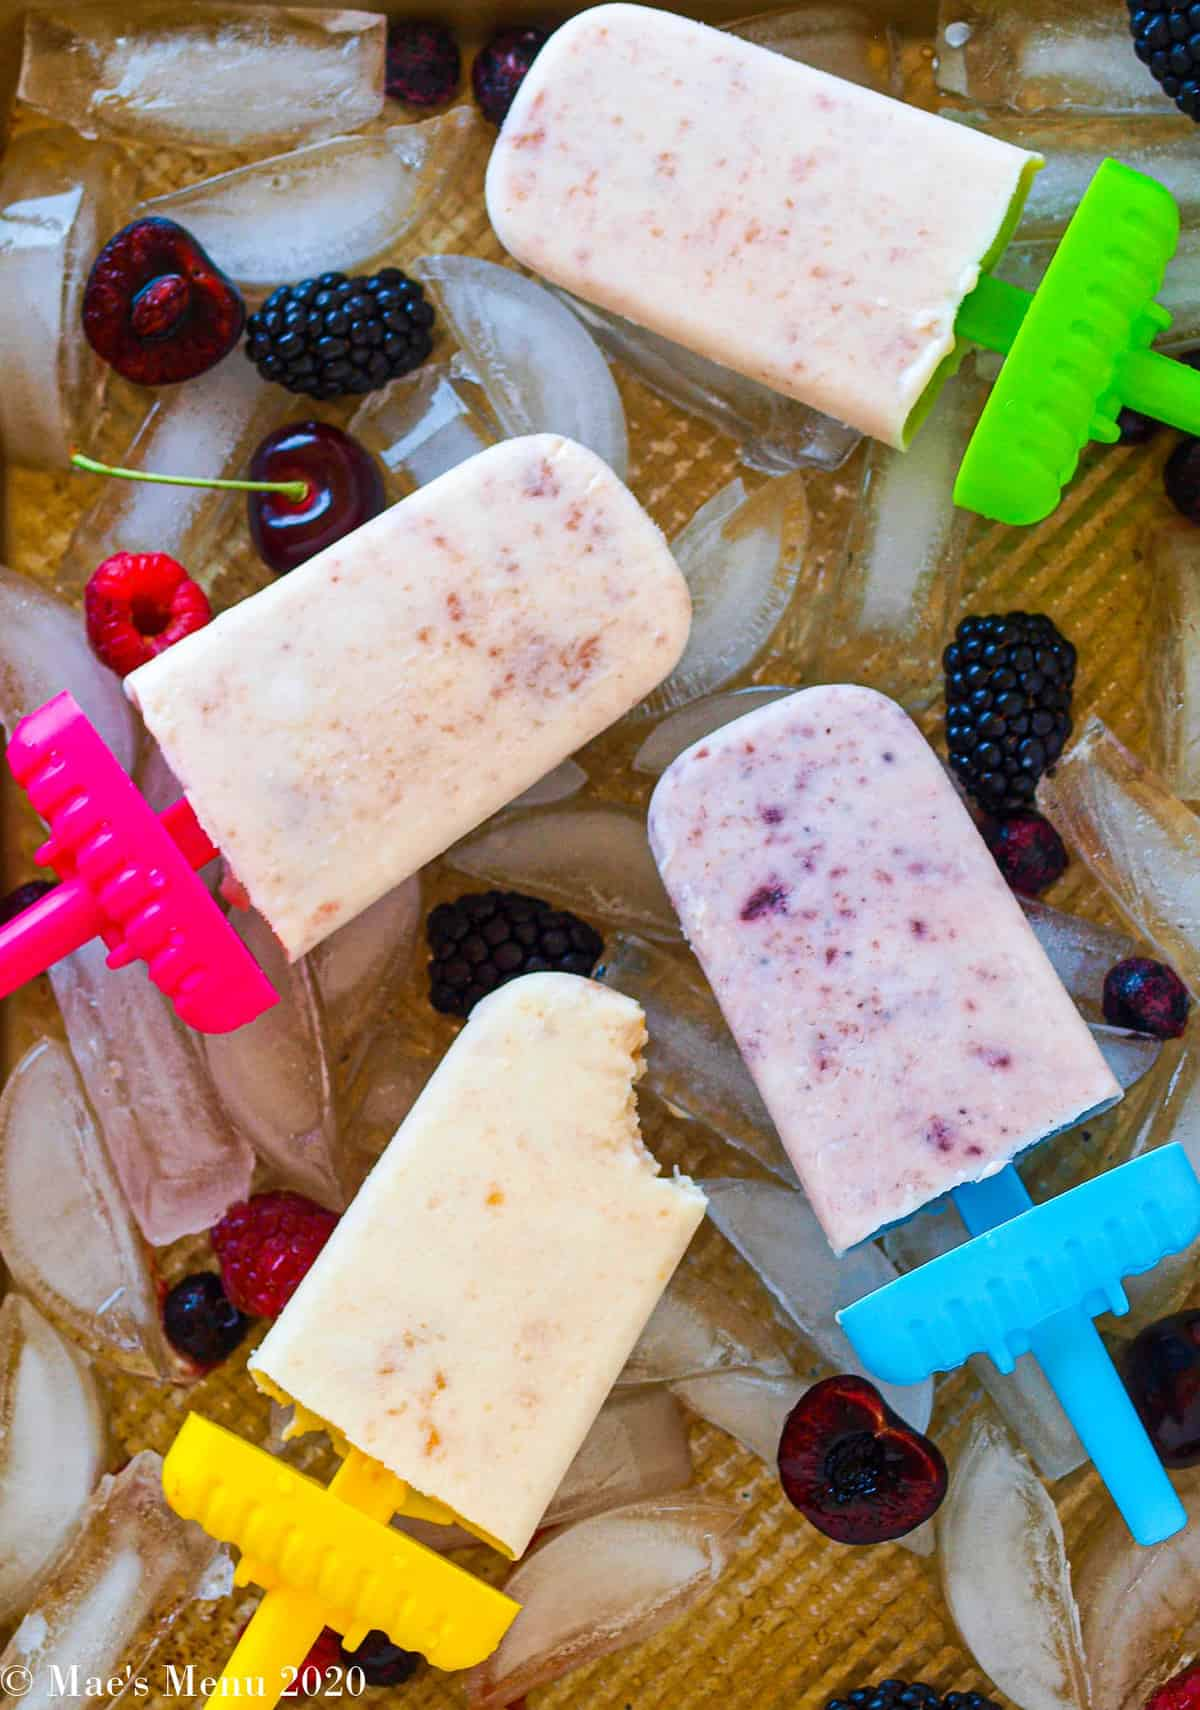 four yogurt popsicles on a tray of ice cubes with berries and cherries around them. One bite is taken out of the peach popsicle